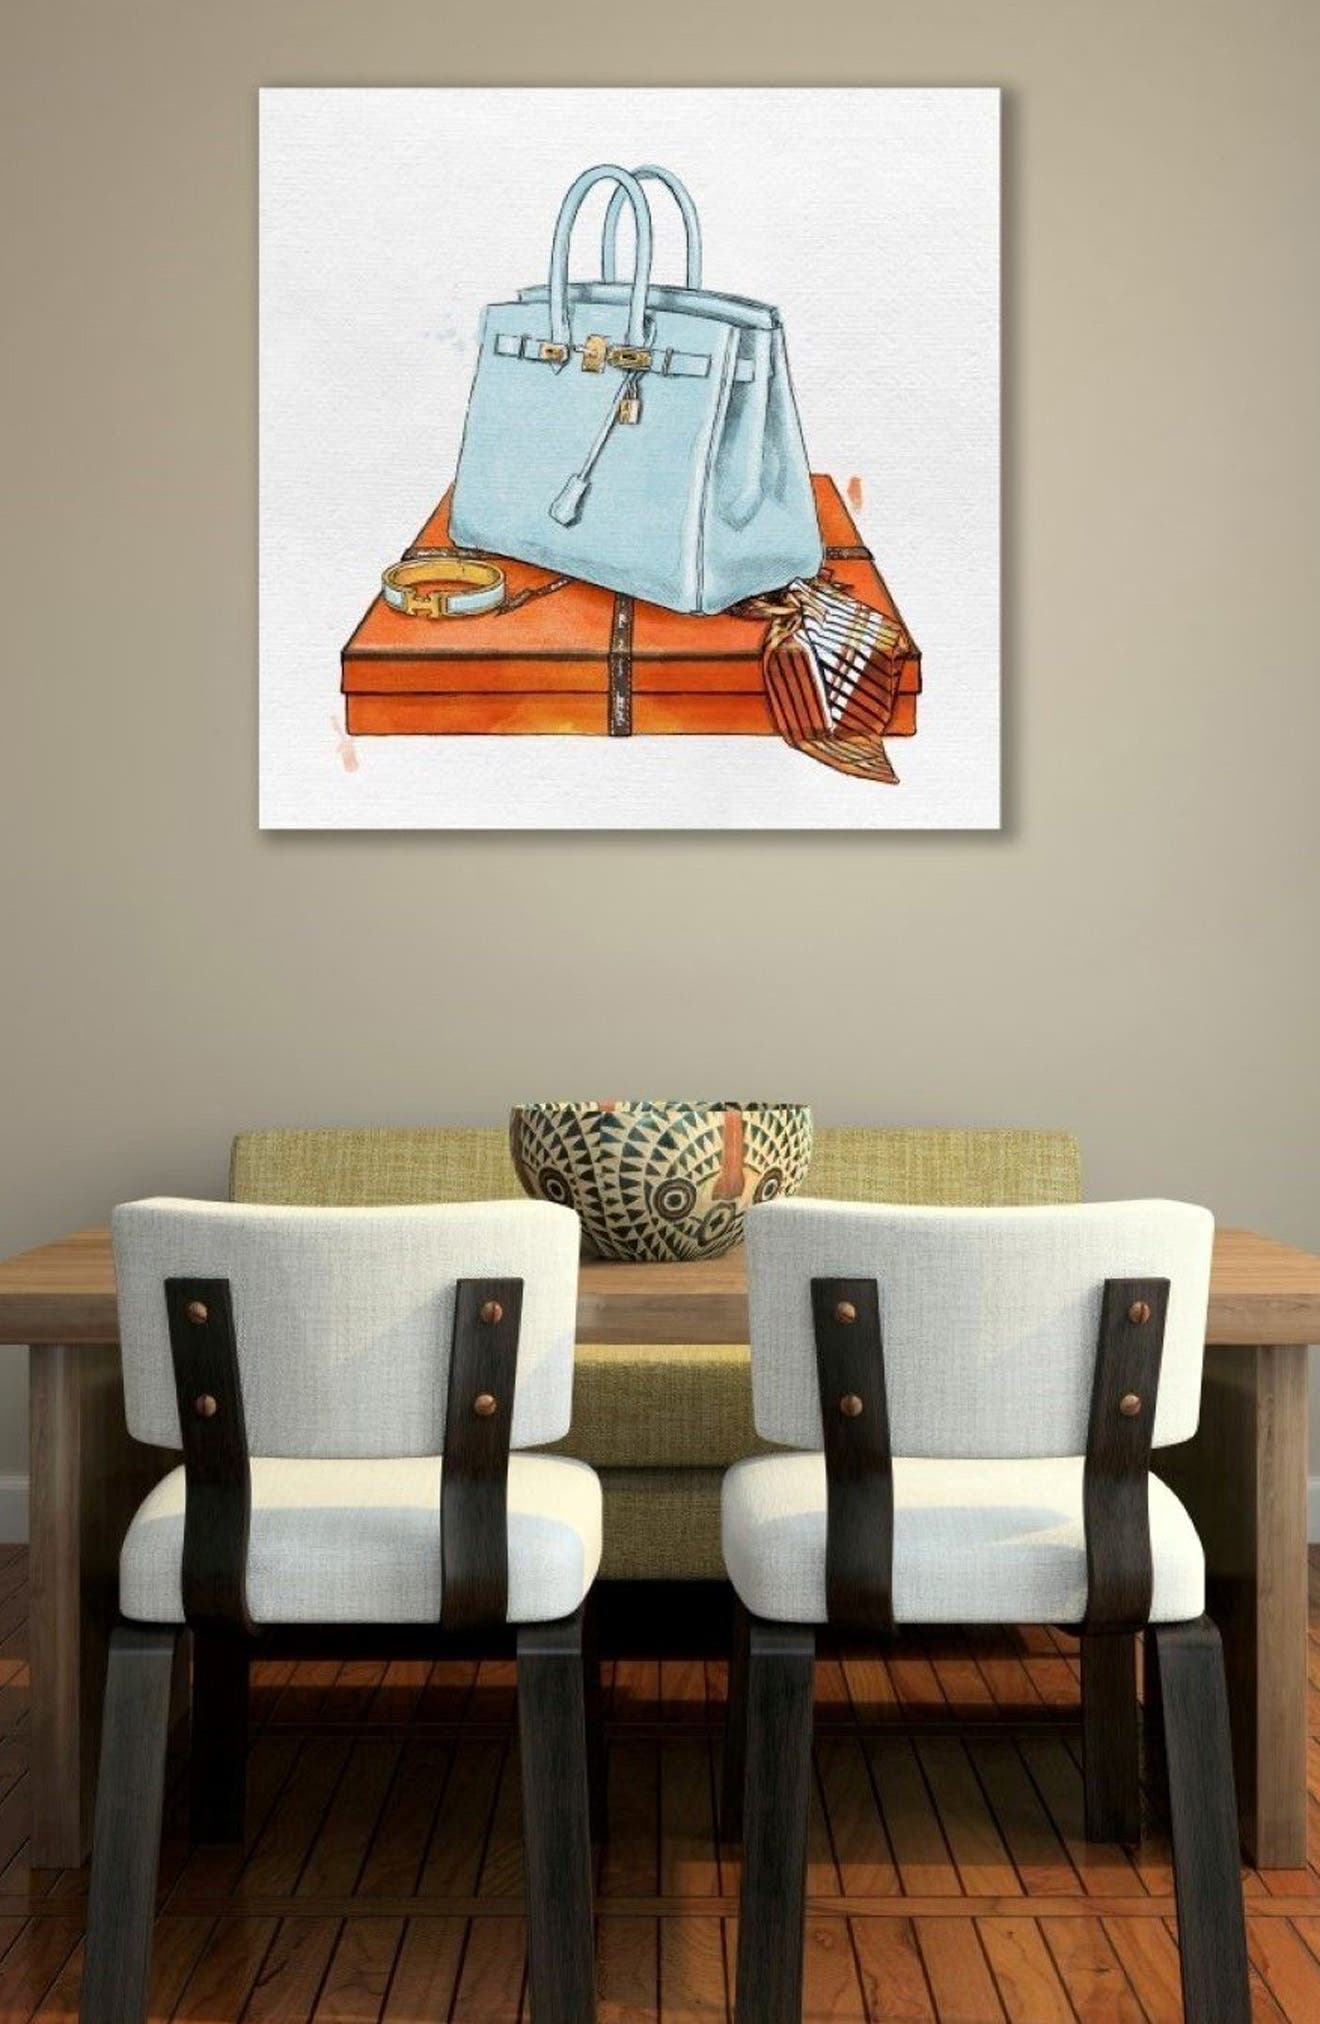 My Bag Collection I Canvas Print,                             Alternate thumbnail 3, color,                             400